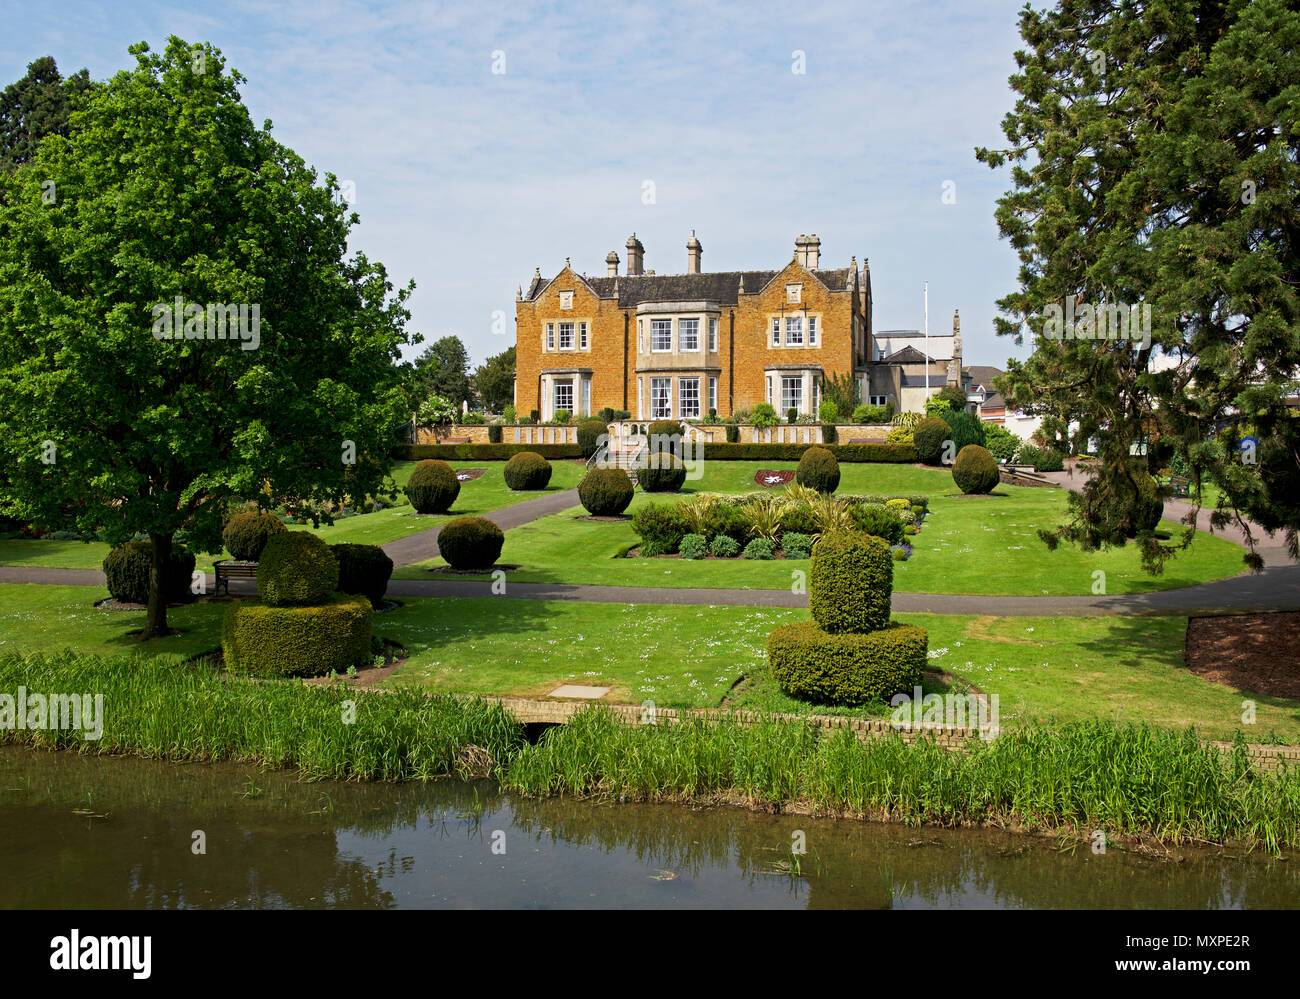 Egerton Lodge, a residential home, Melton Mowbray, Leicestershire, England UK - Stock Image